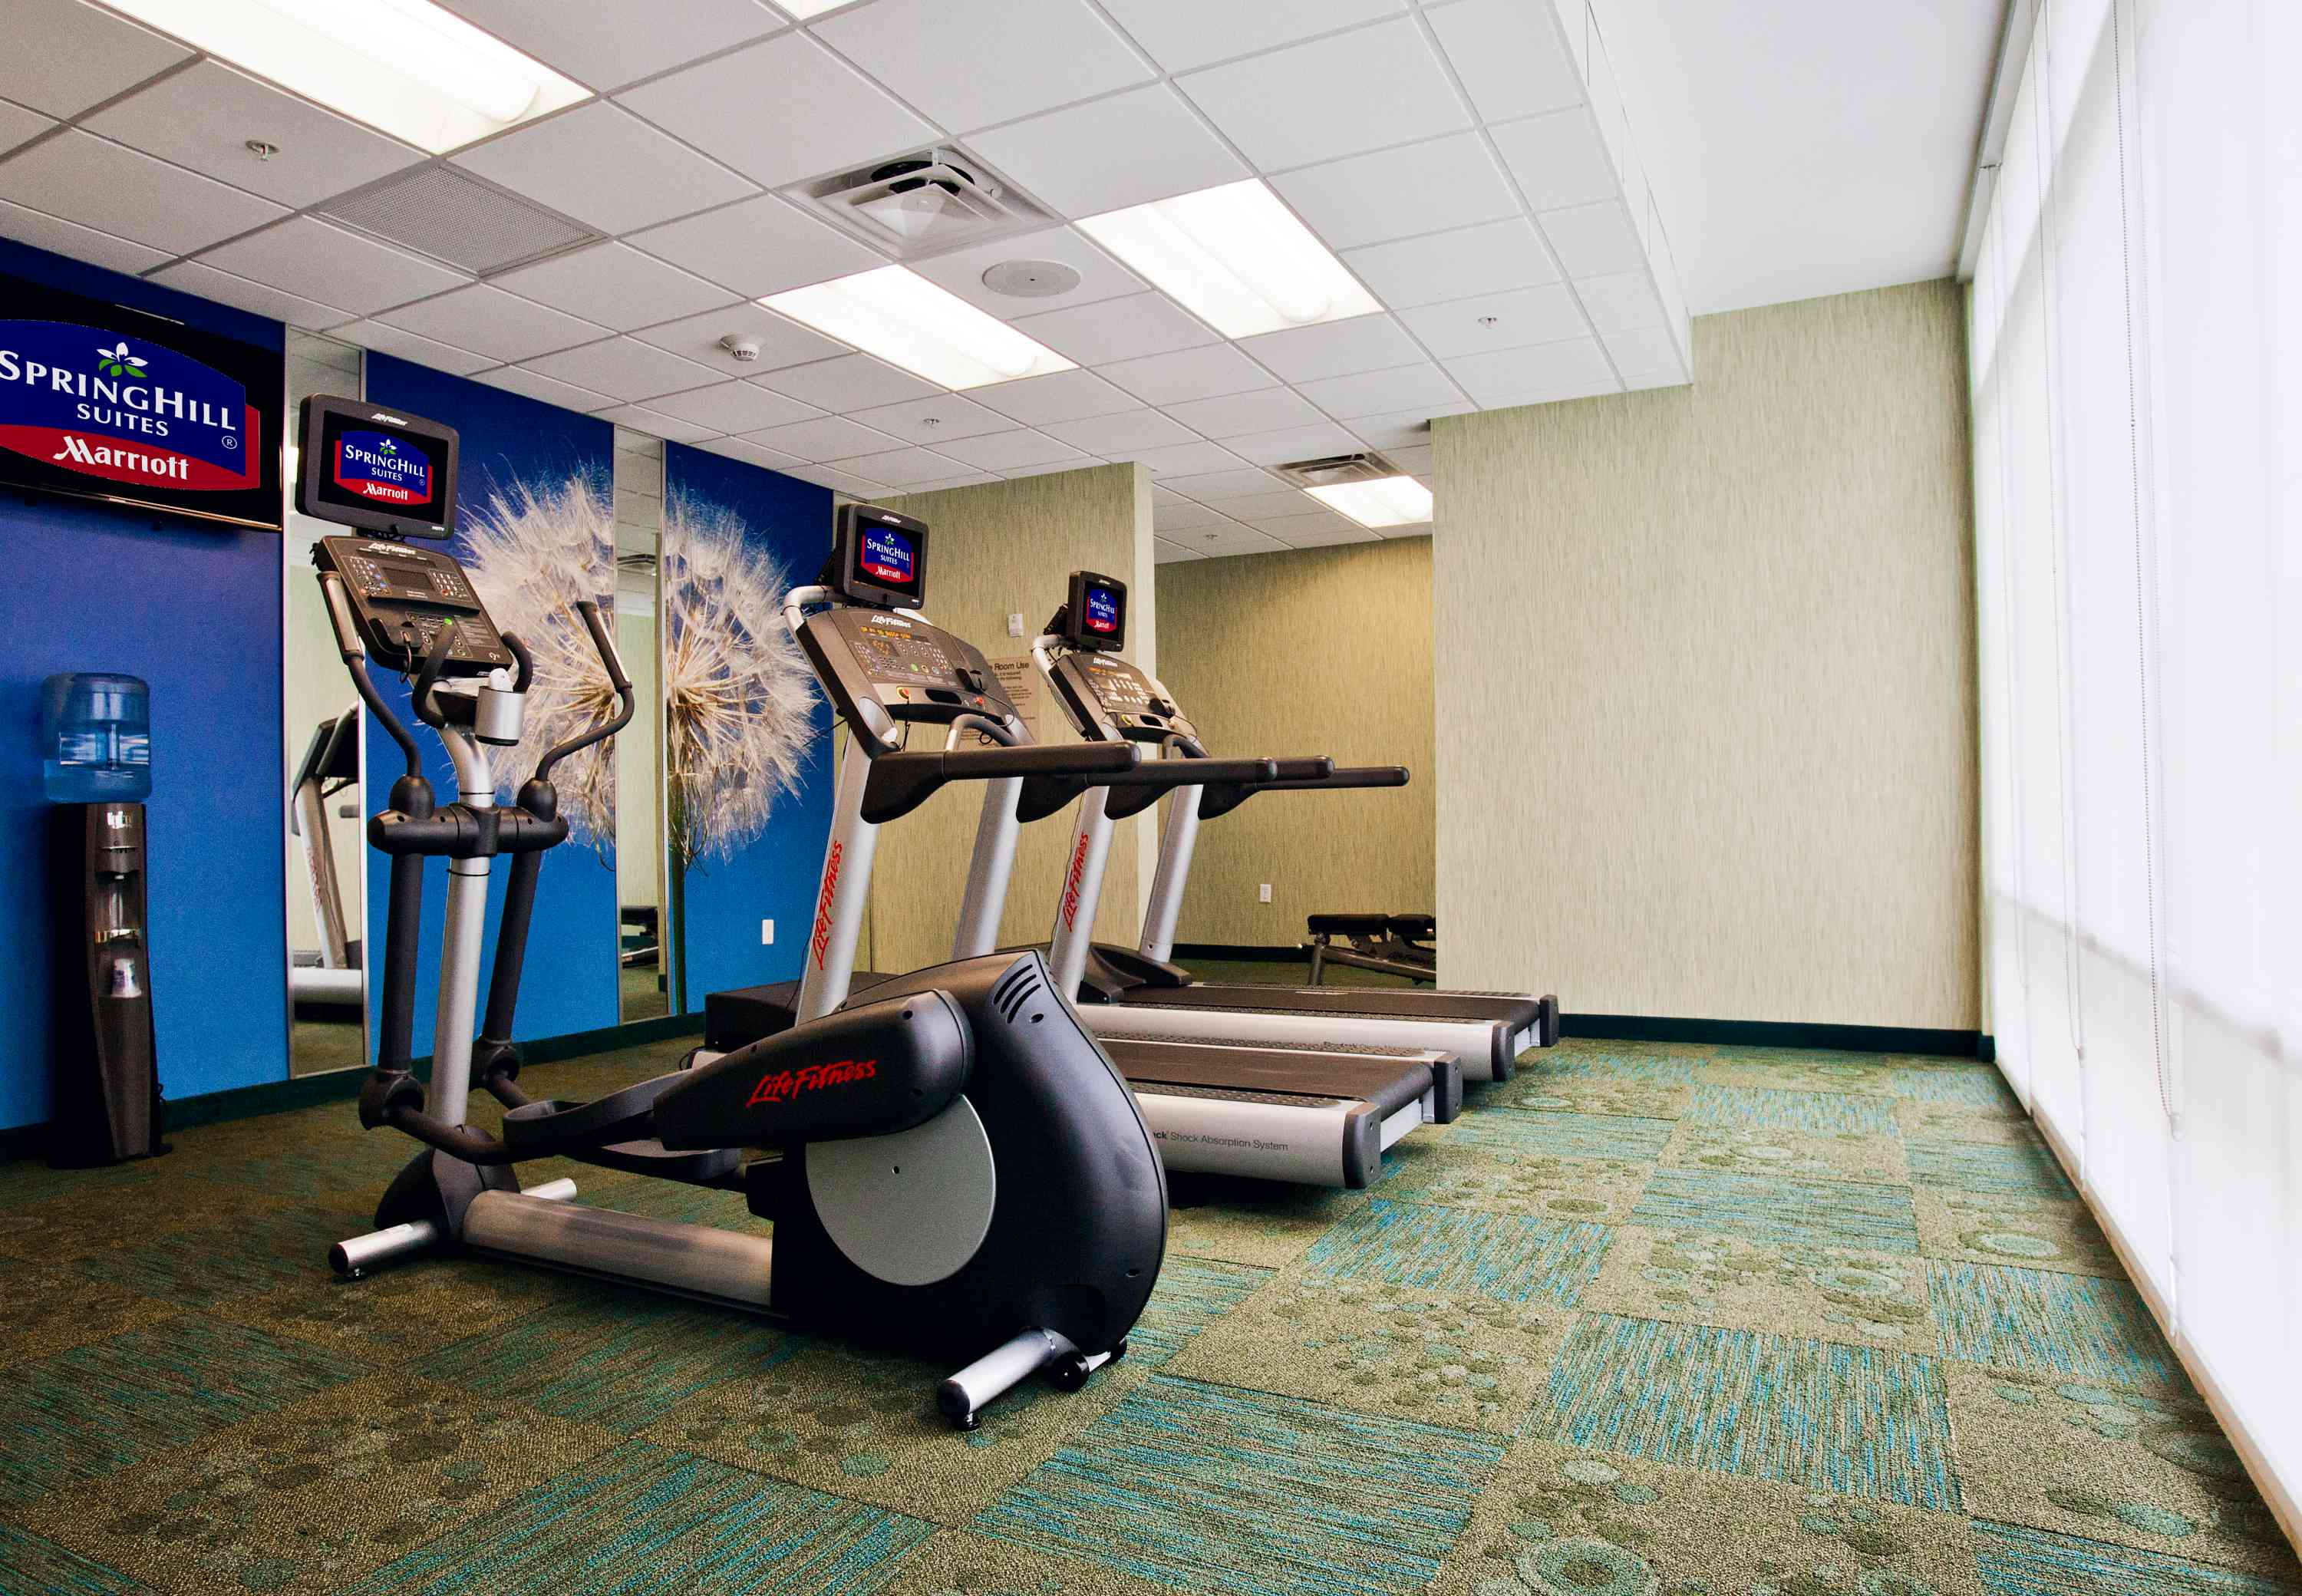 SpringHill Suites by Marriott Mobile image 1